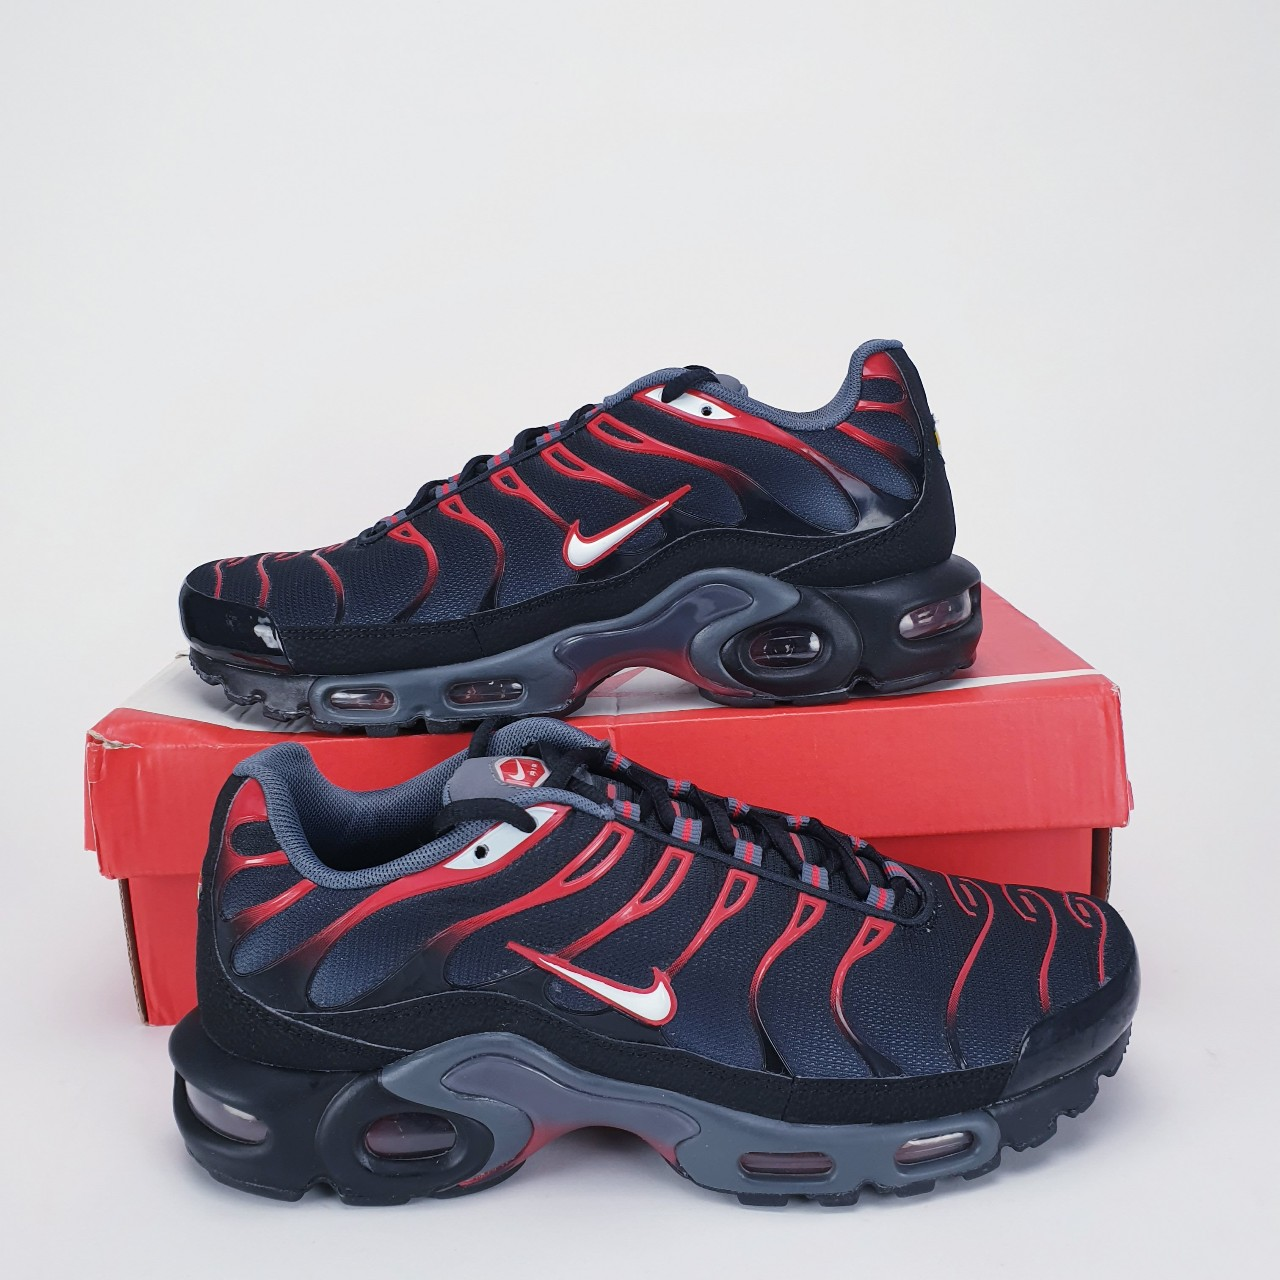 Nike Air Max Plus Tuned TN Men's Trainers Shoes... - Depop